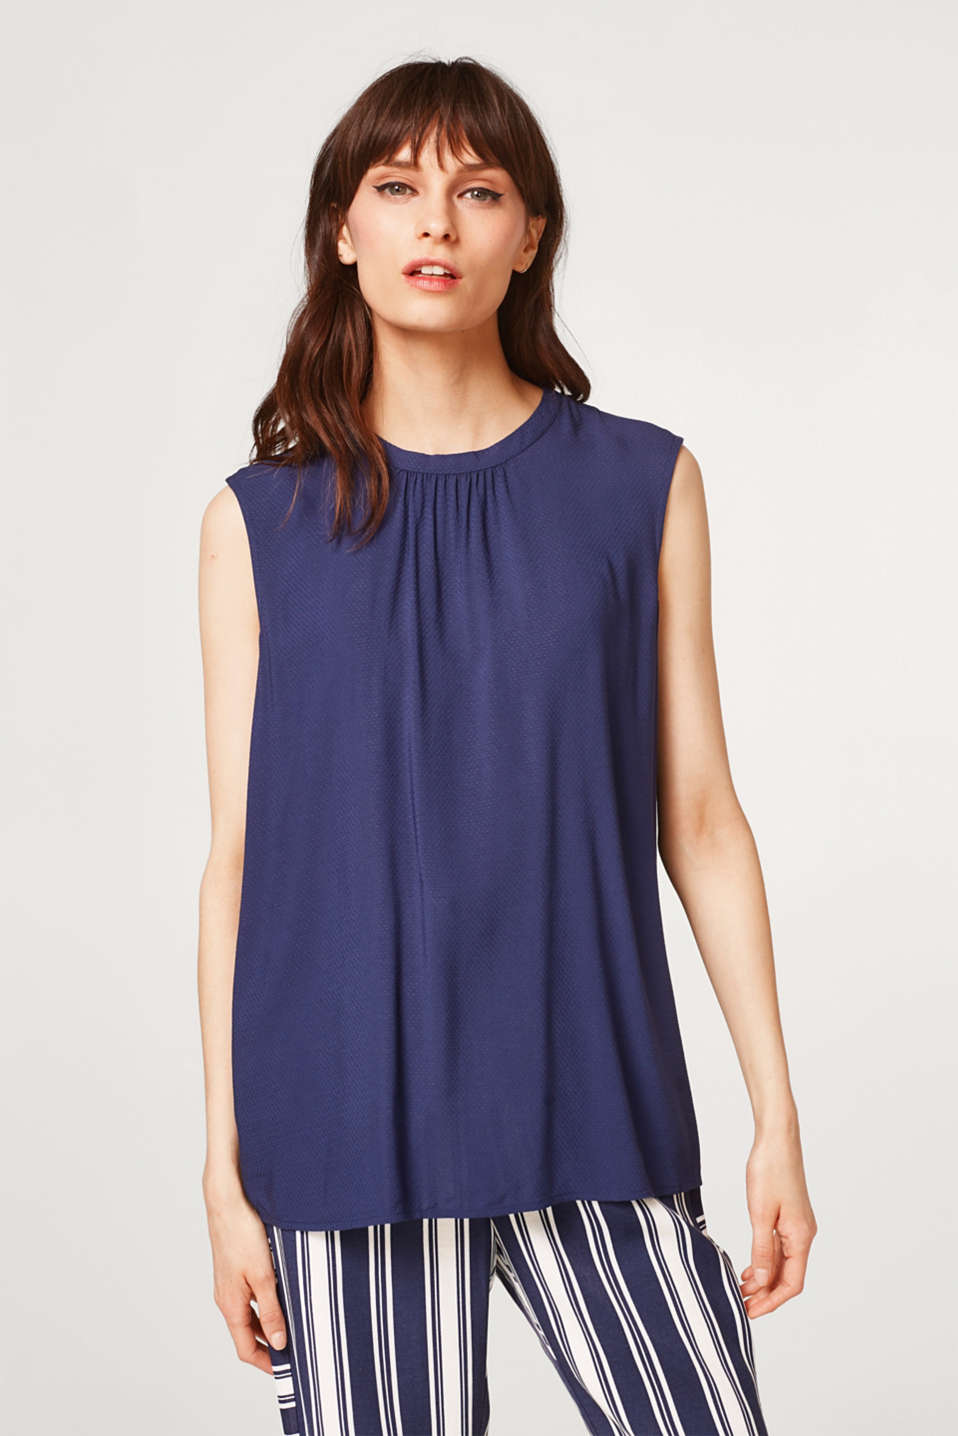 Esprit - Blouse top with a subtle texture